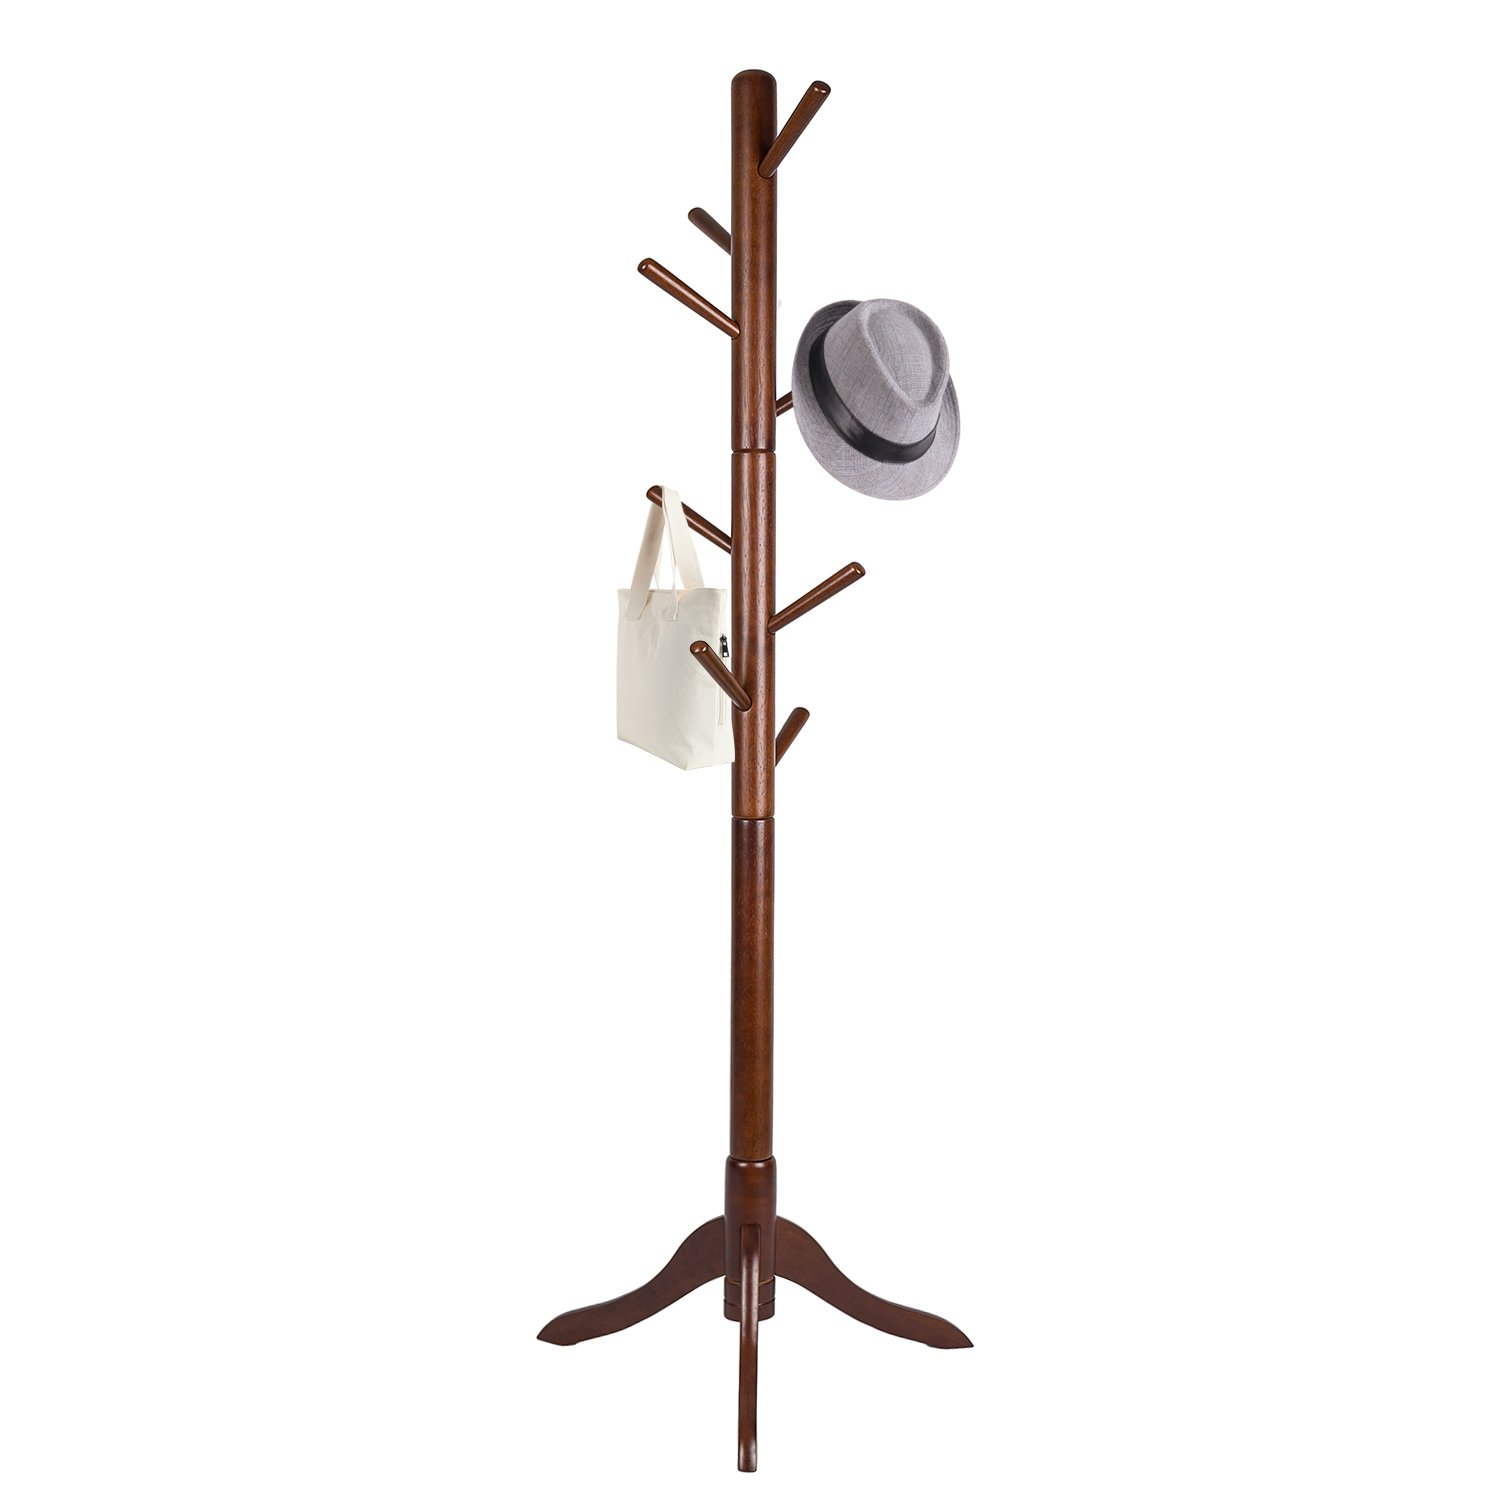 Vlush Free Standing Coat Rack, 8 Hooks Wooden Coat Hat Tree Coat Hanger Holder Enterway Hall Tree with Solid Rubber Wood Base for Coat, Hat, Clothes, Scarves, Handbags, Umbrella-Coffee by Vlush